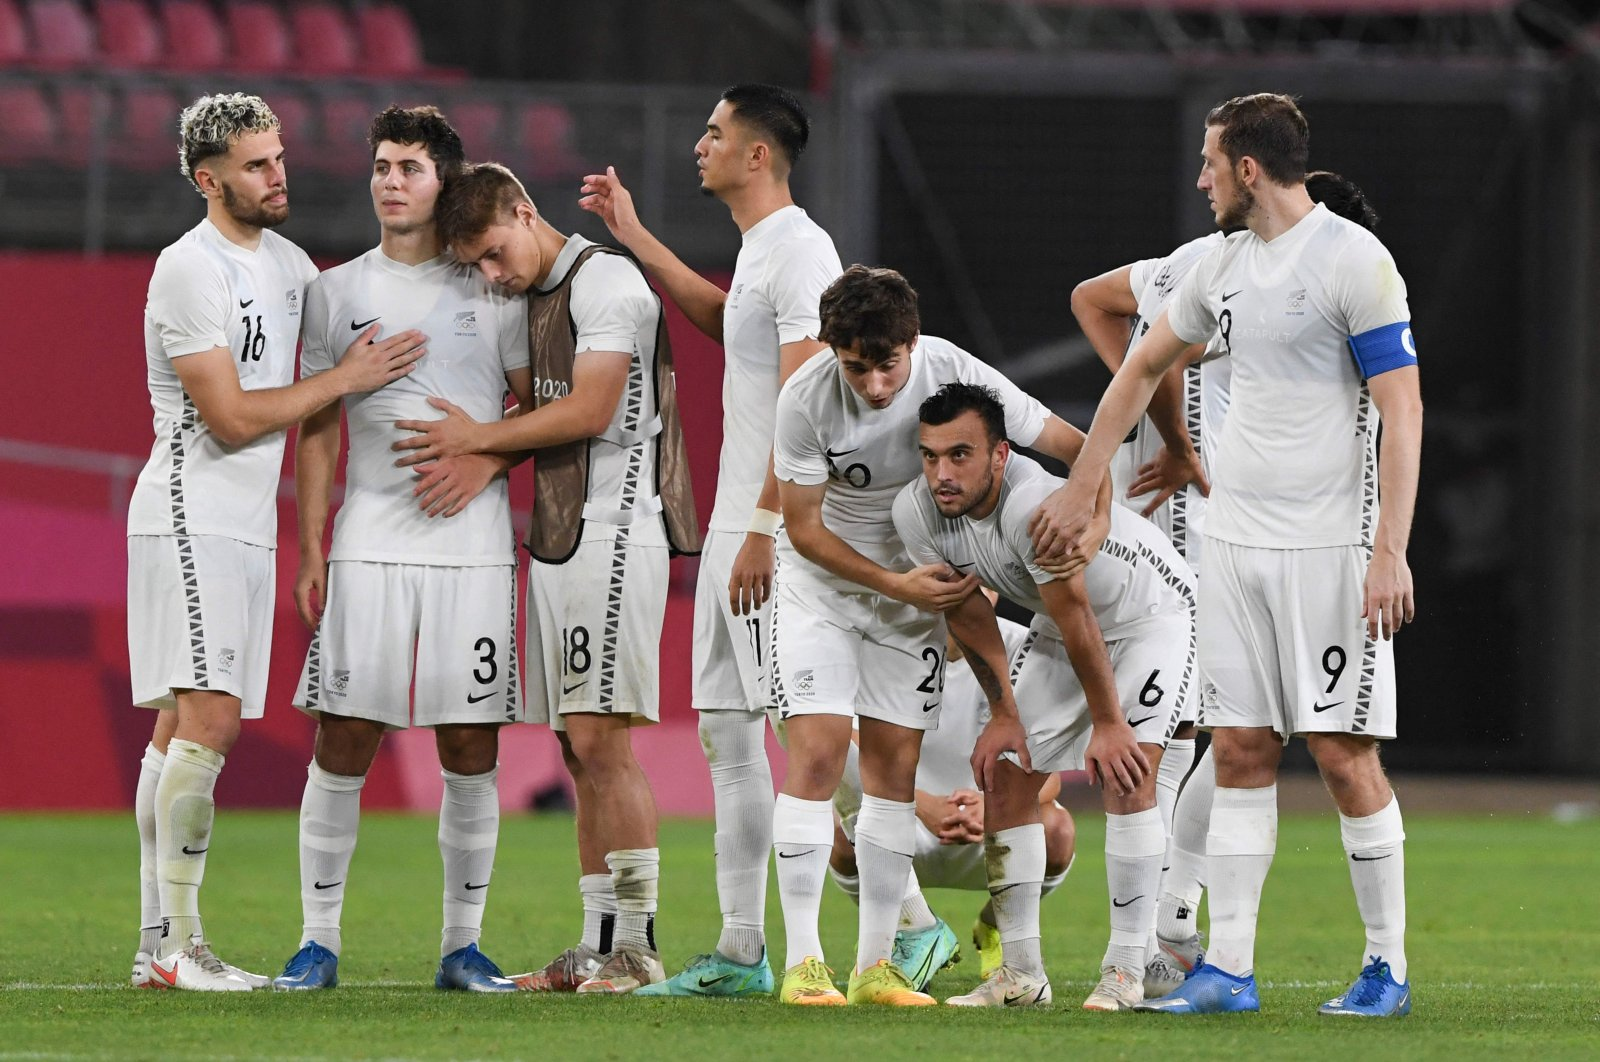 New Zealand players react to their defeat in the Tokyo 2020 Olympic Games men's quarterfinal against Japan at Ibaraki Kashima Stadium in Kashima, Ibaraki prefecture, July 31, 2021. (AFP Photo)